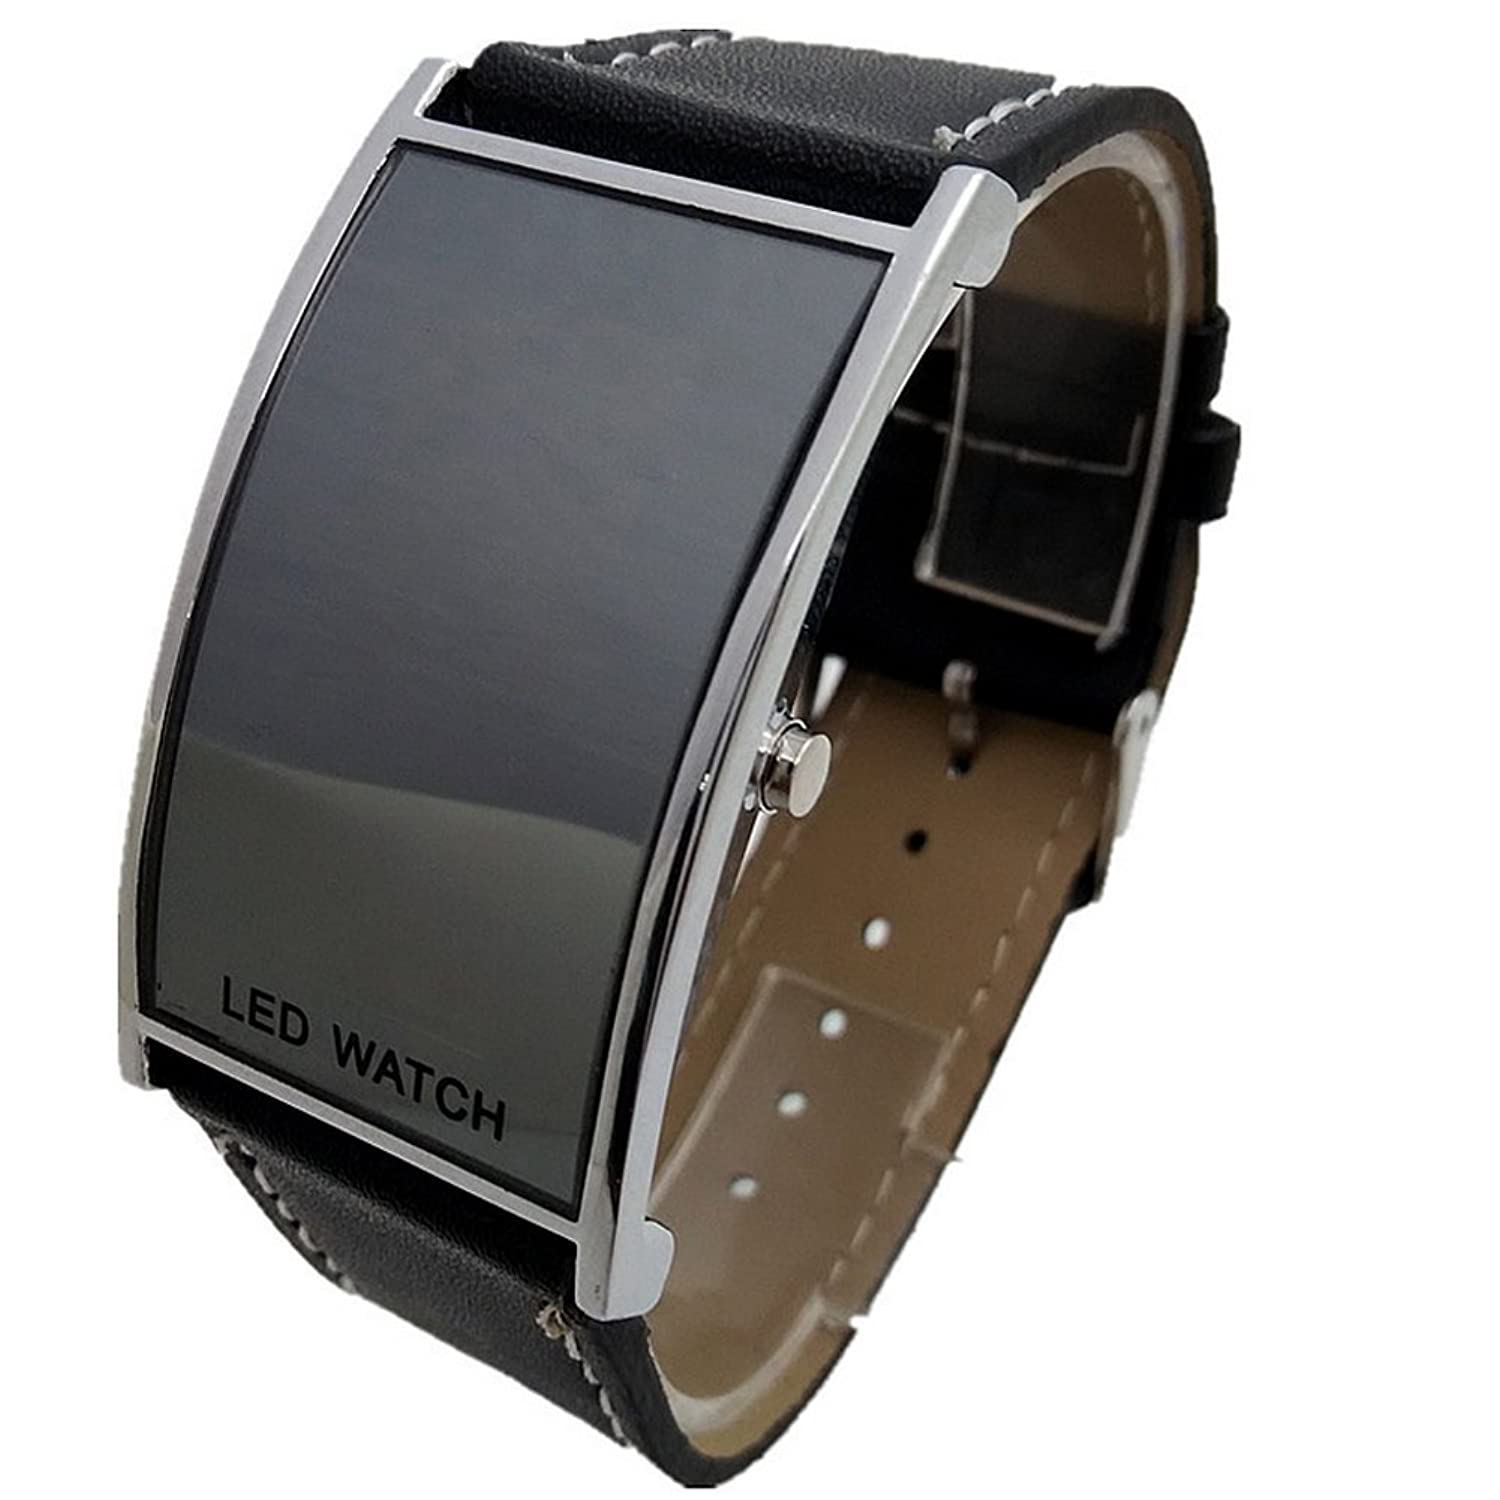 Montre miroir led watch 35302 miroir id es for Miroir noir watch online